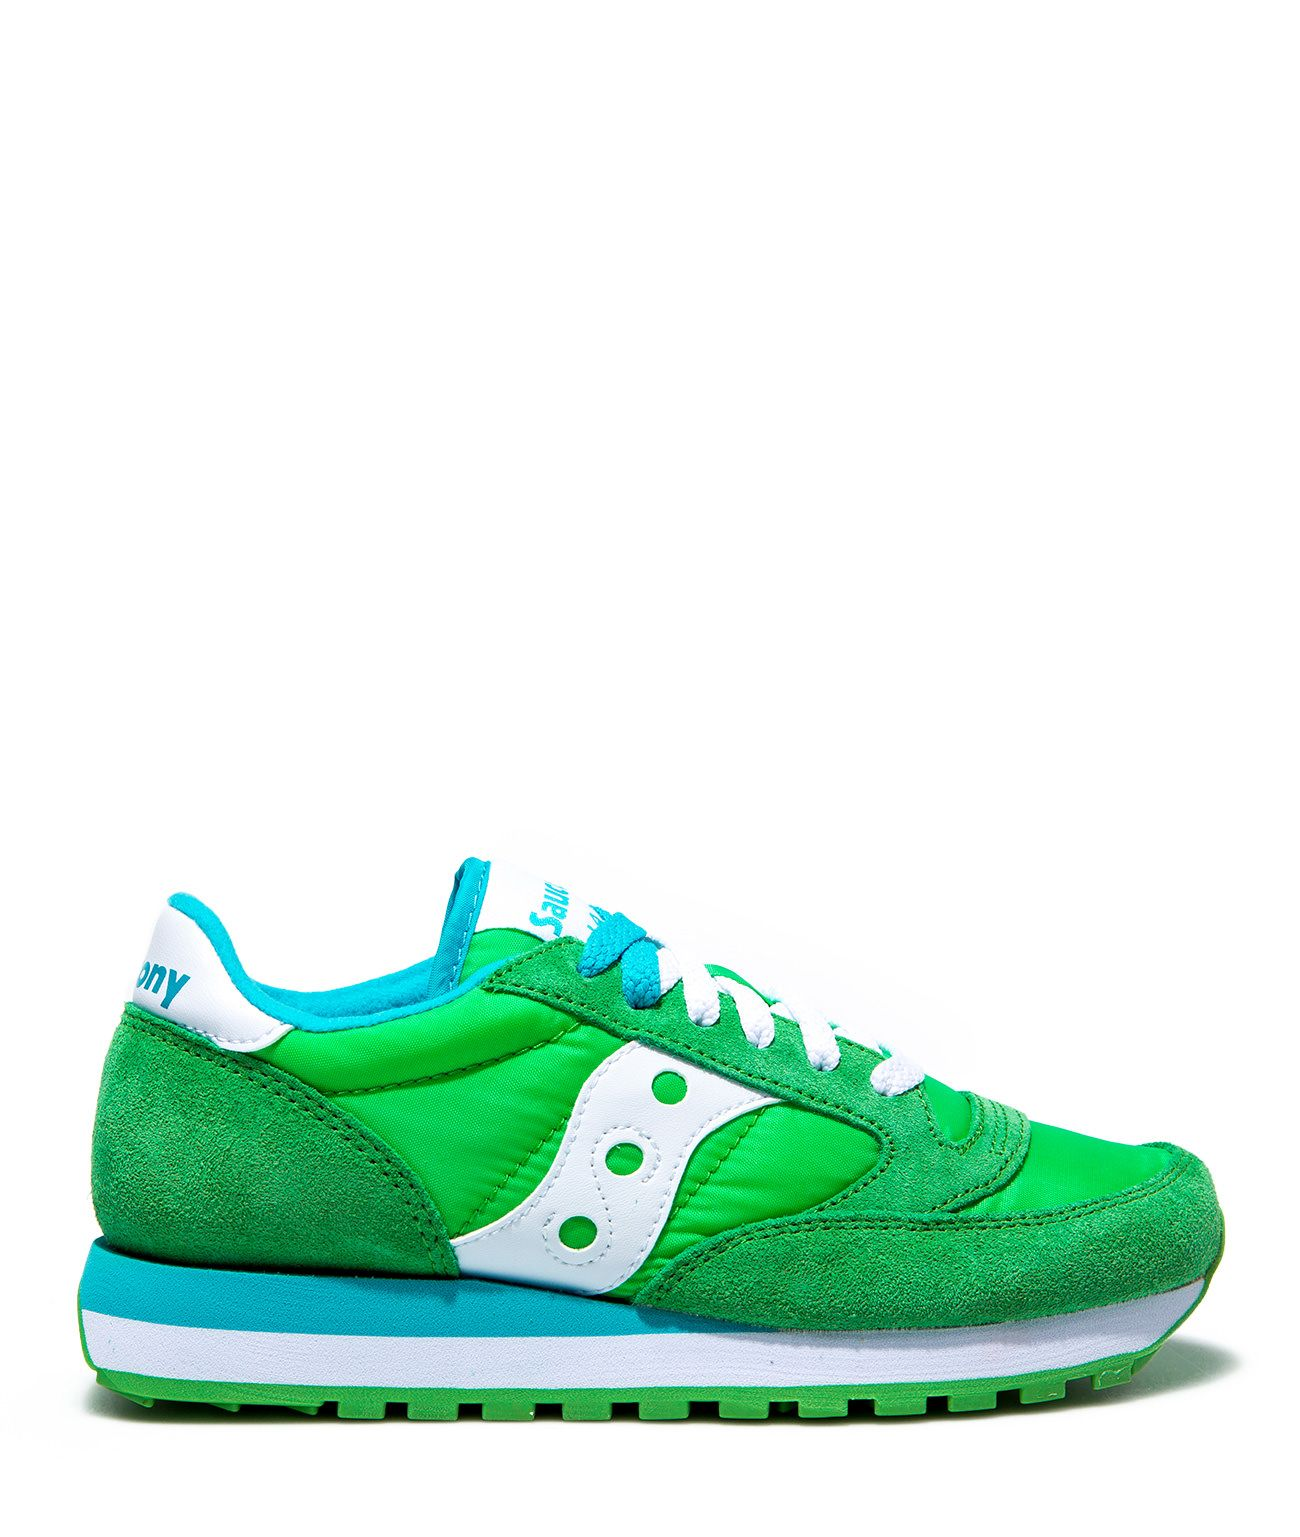 GREEN SUEDE AND NYLON SAUCONY JAZZ ORIGINAL SNEAKERS GREEN SAUCONY  #playgroundshop #saucony #sneakers